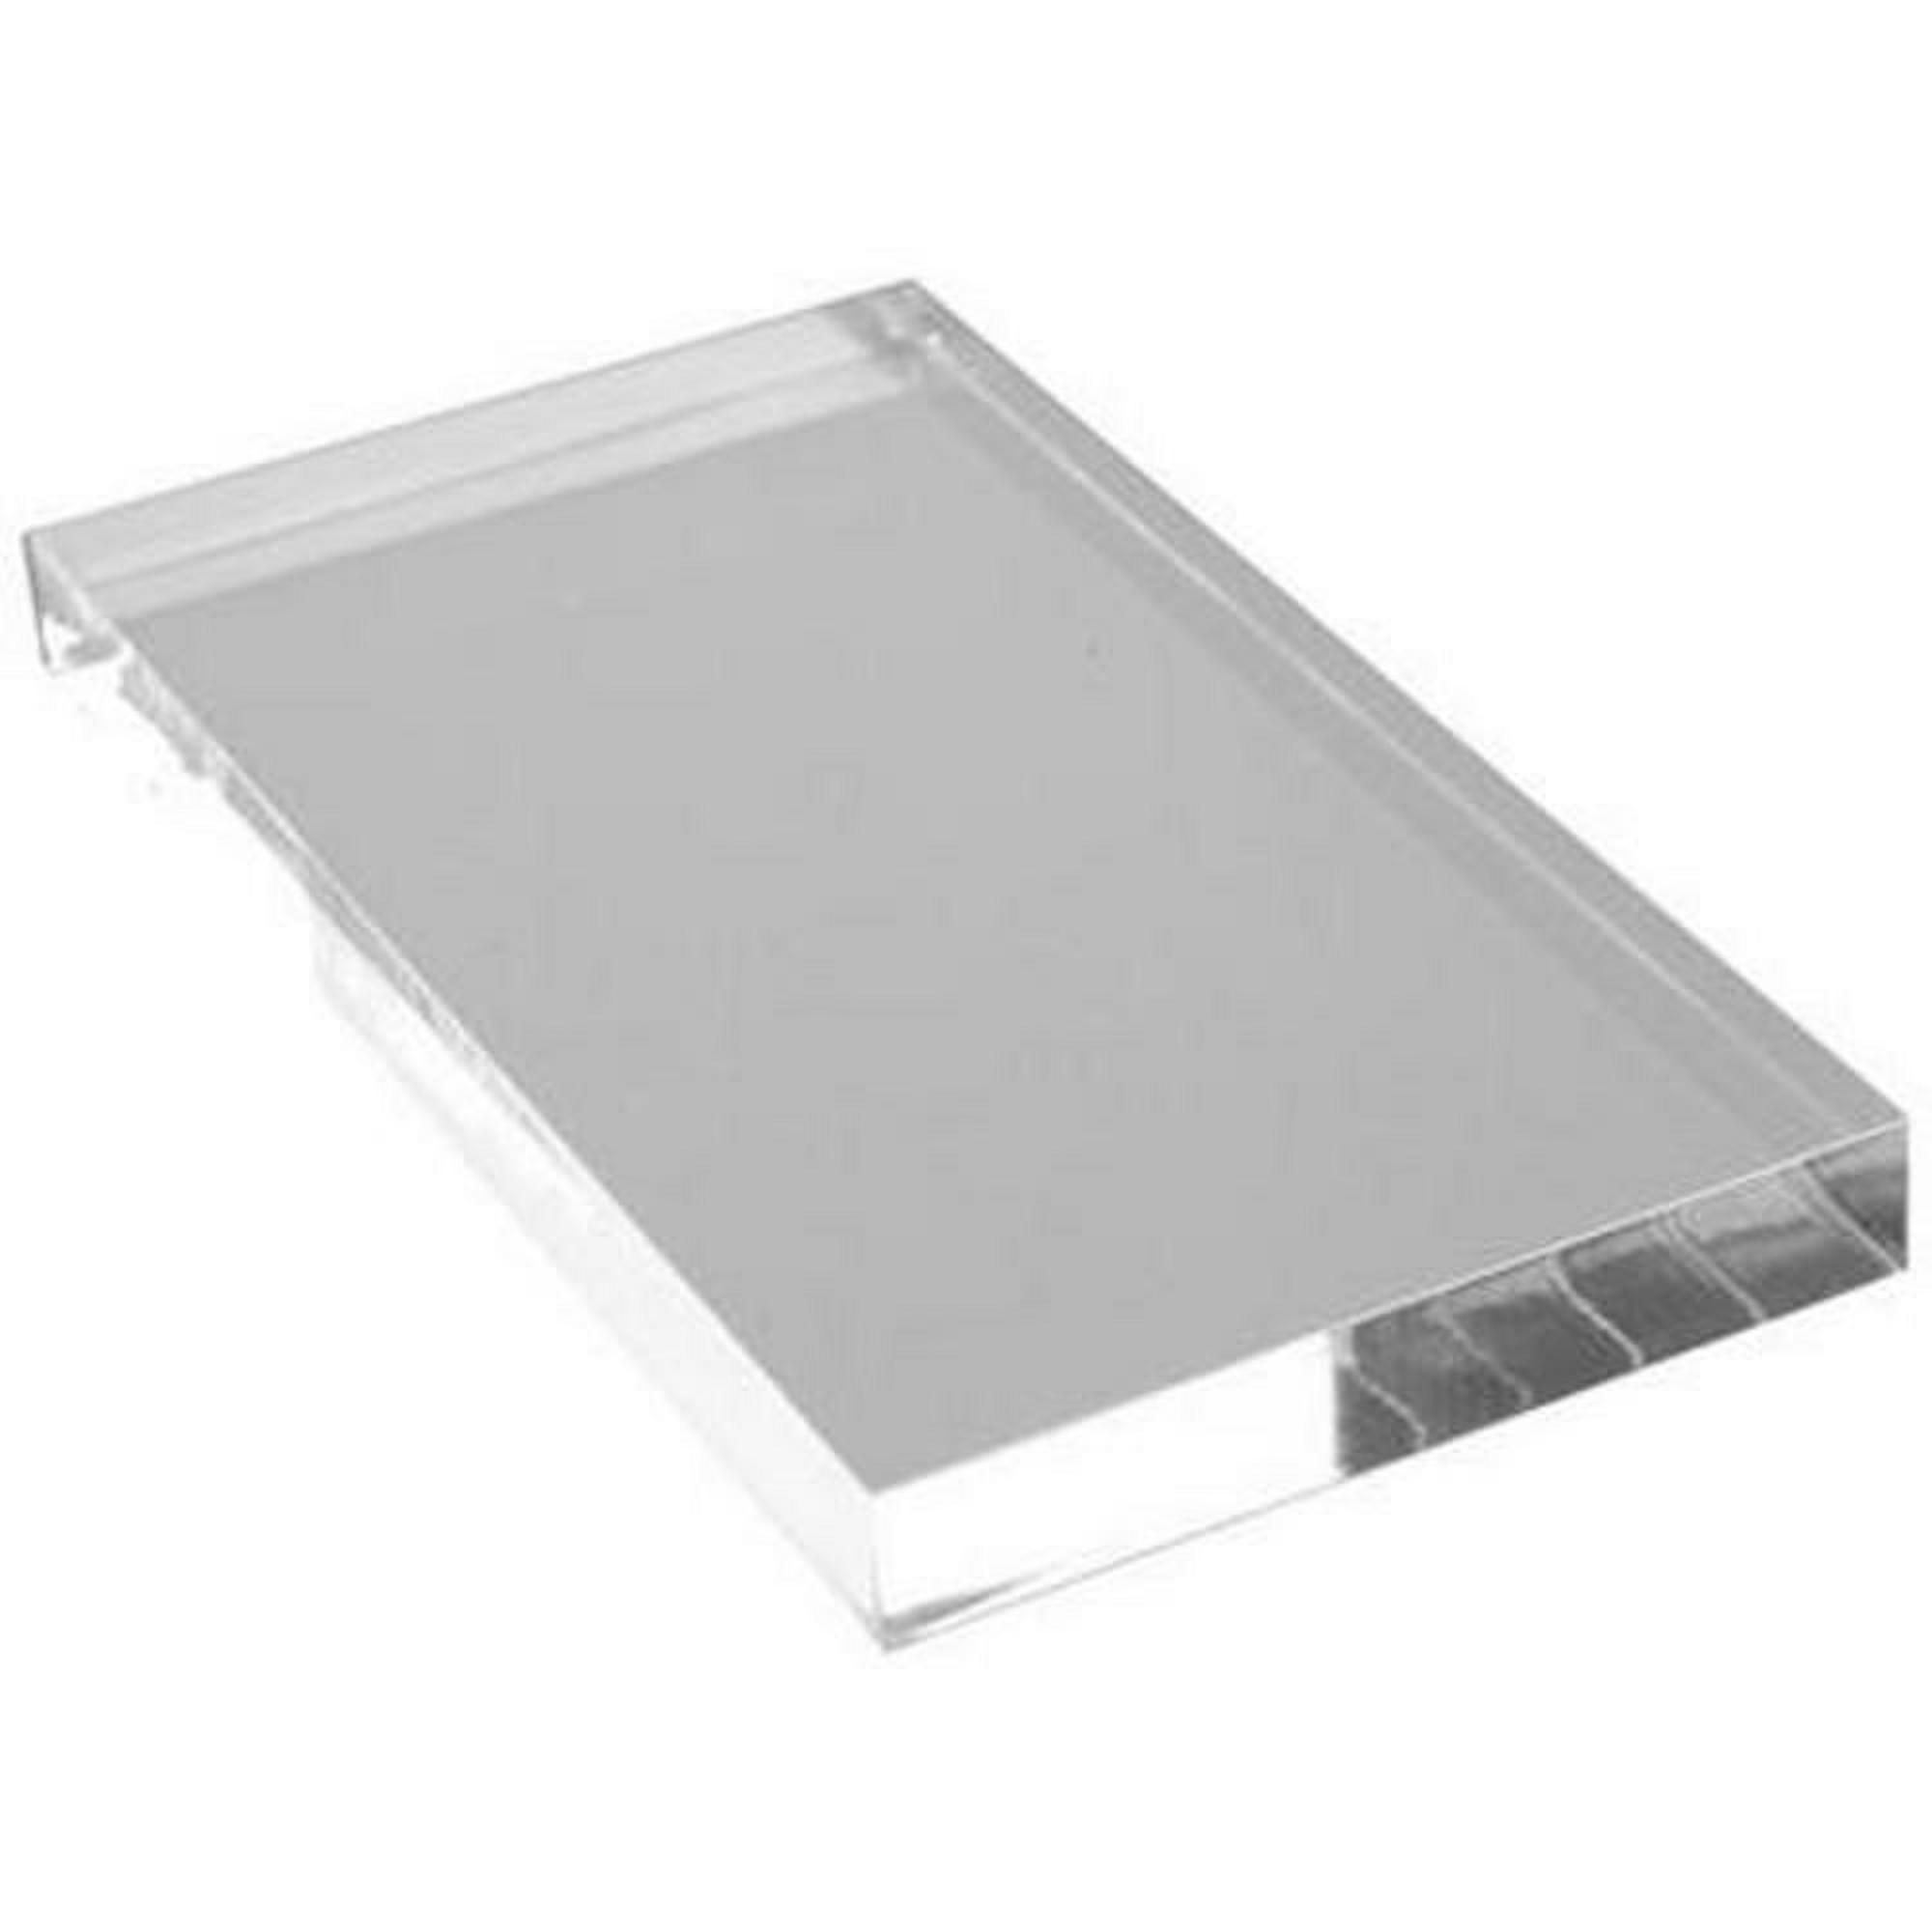 Clear Acrylic Stamp Block 58mm x 102mm x 10mm deep